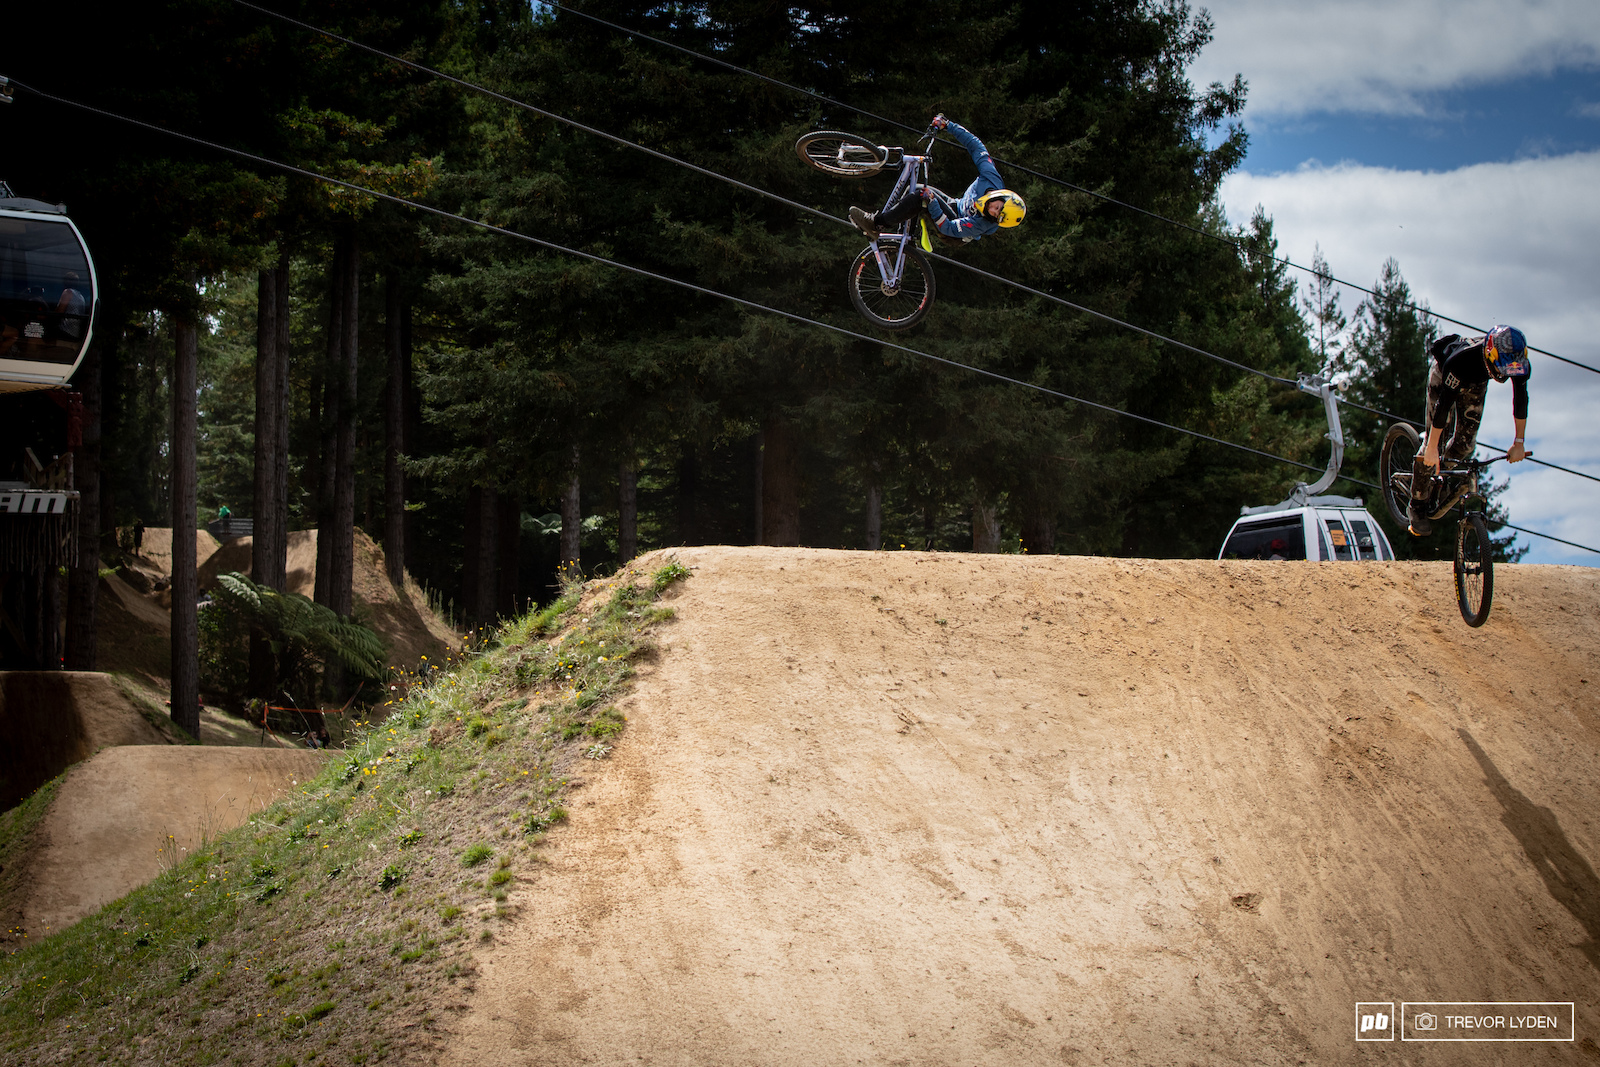 The slopestyle kicked off in the usual fashion a tribute train to the late Kelly McGarry.